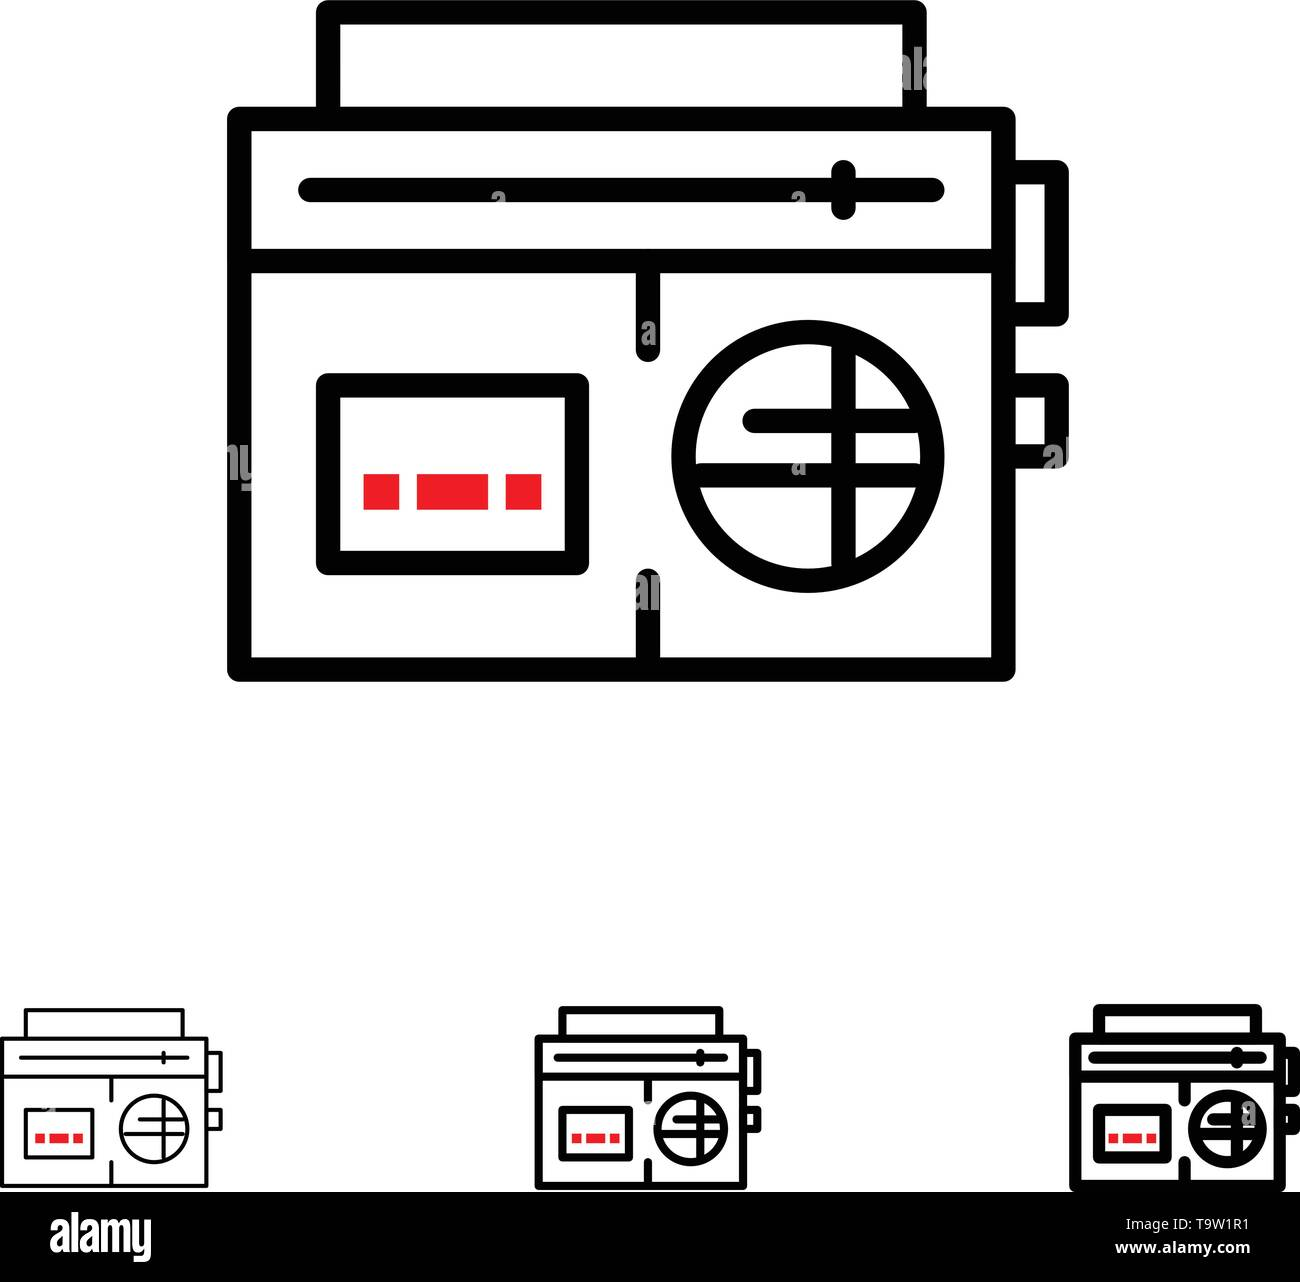 Tape, Radio, Music, Media Bold and thin black line icon set - Stock Image